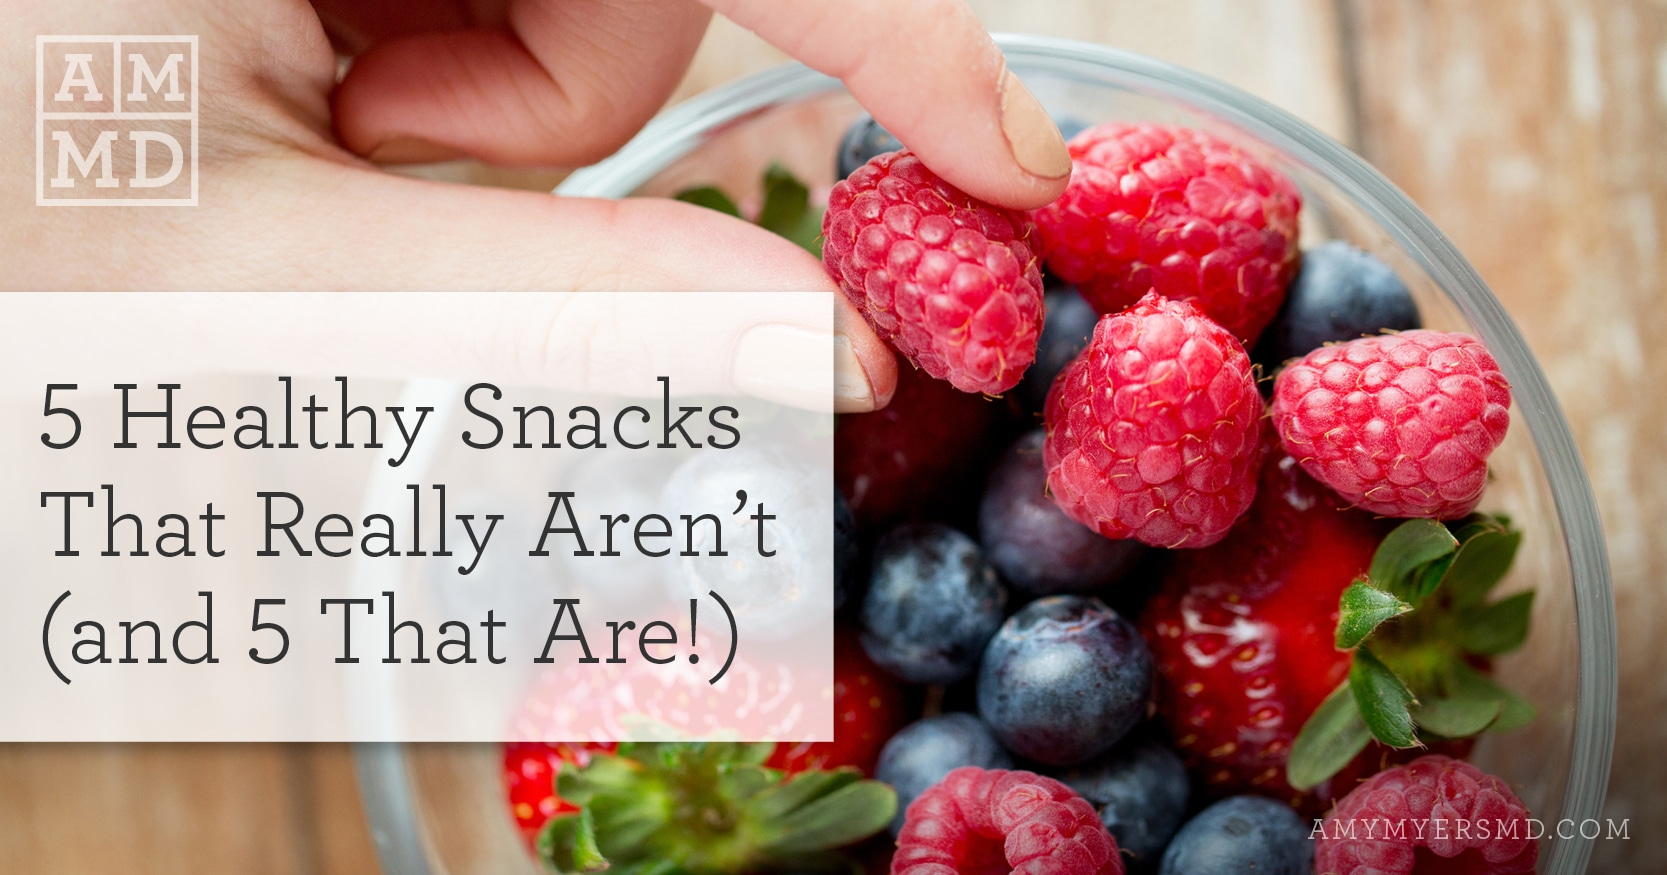 5 healthy snacks that really aren't